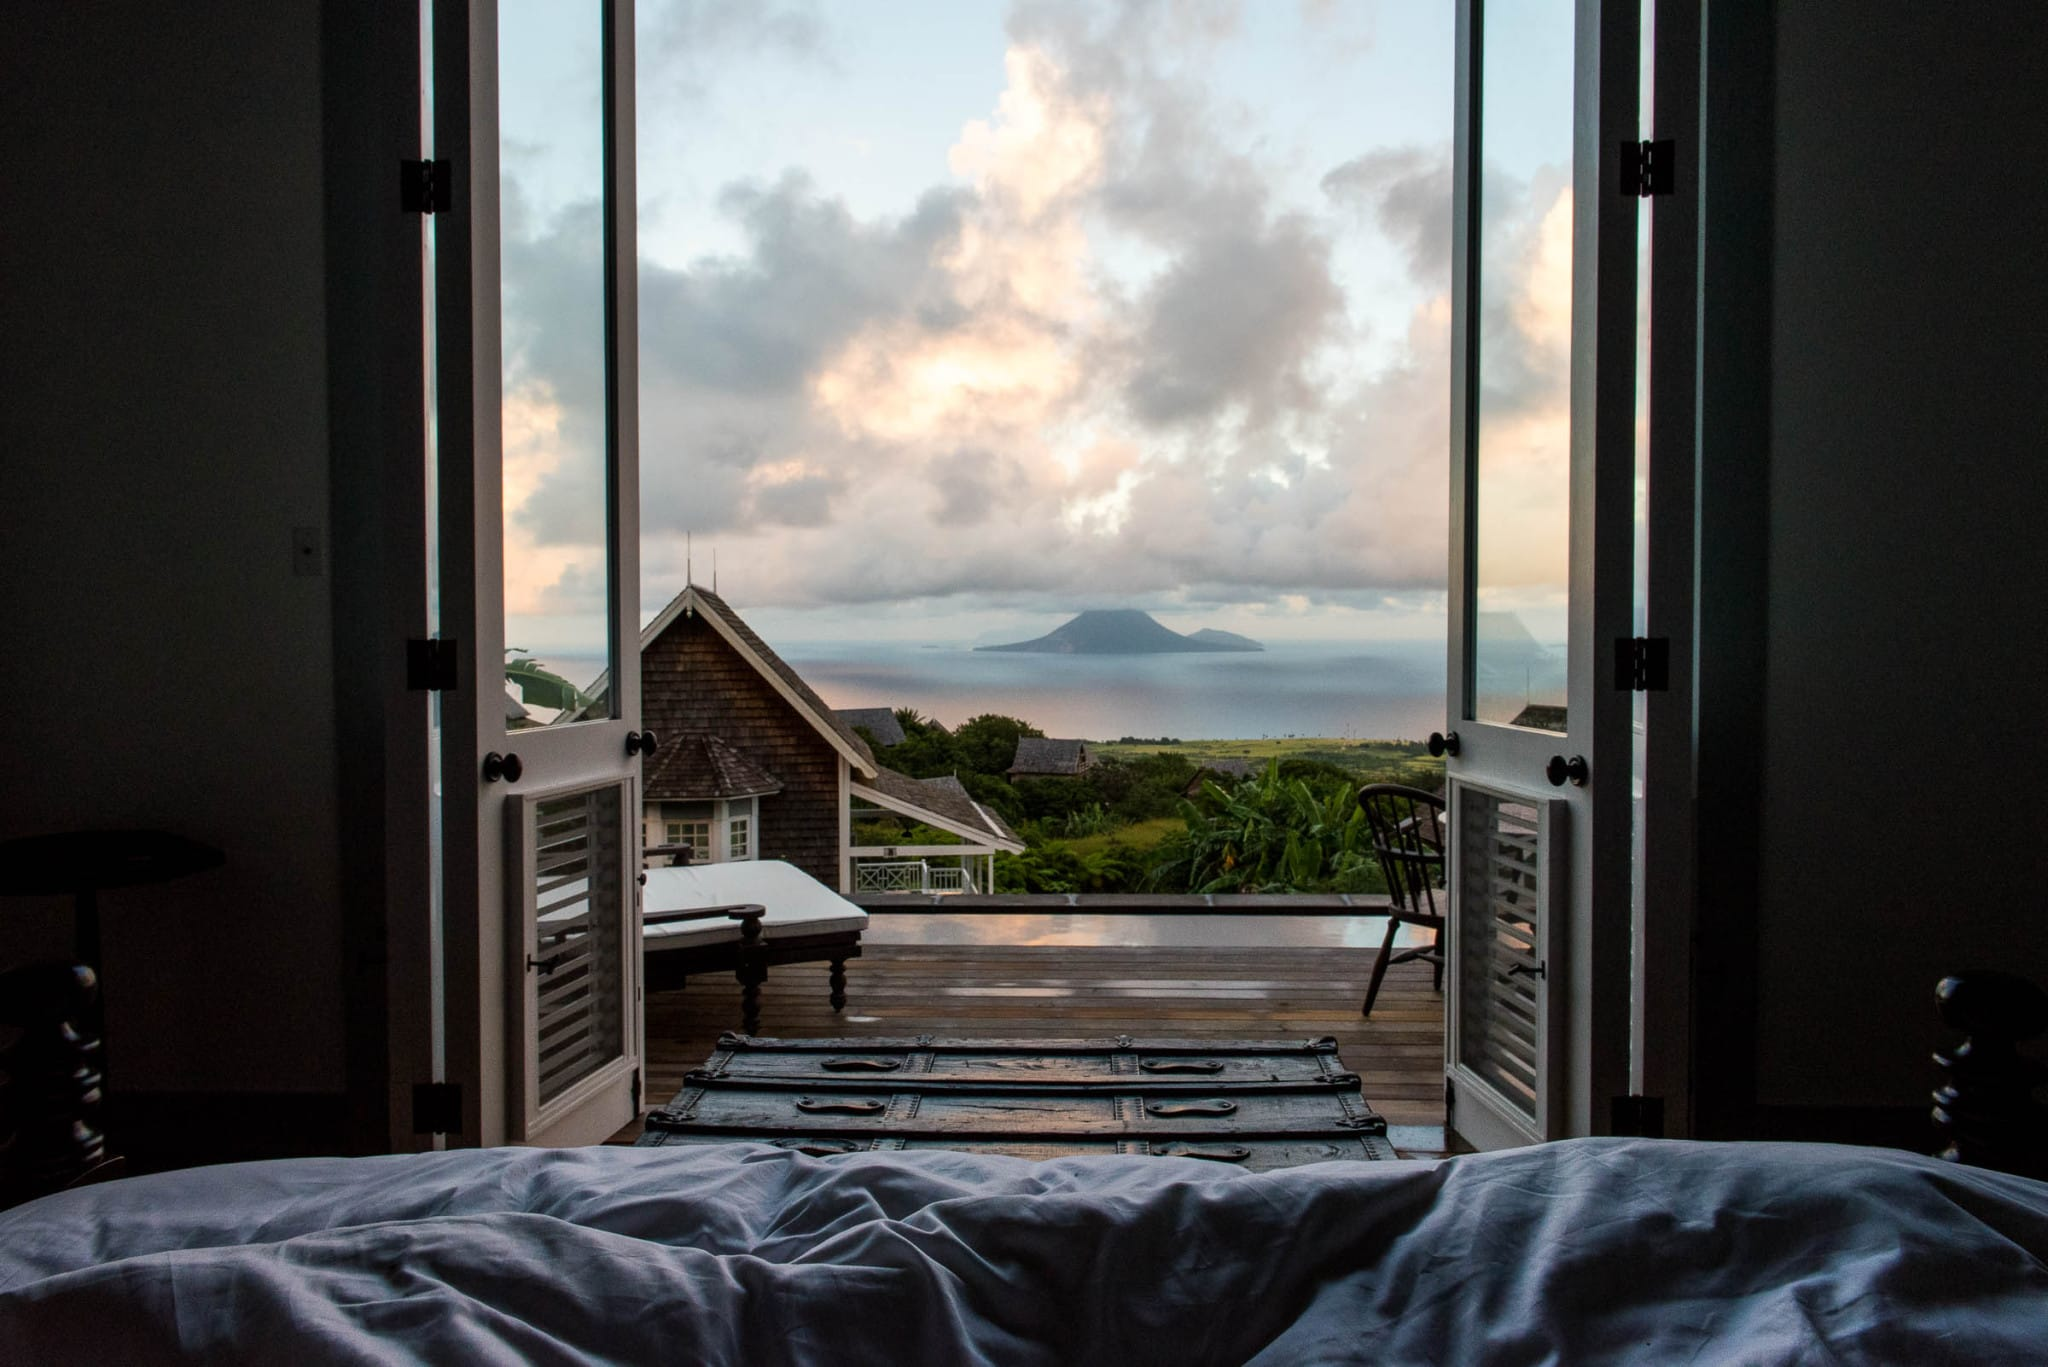 Waking up at Belle Mont Farm on Kittitian Hill by Patrick Bennett